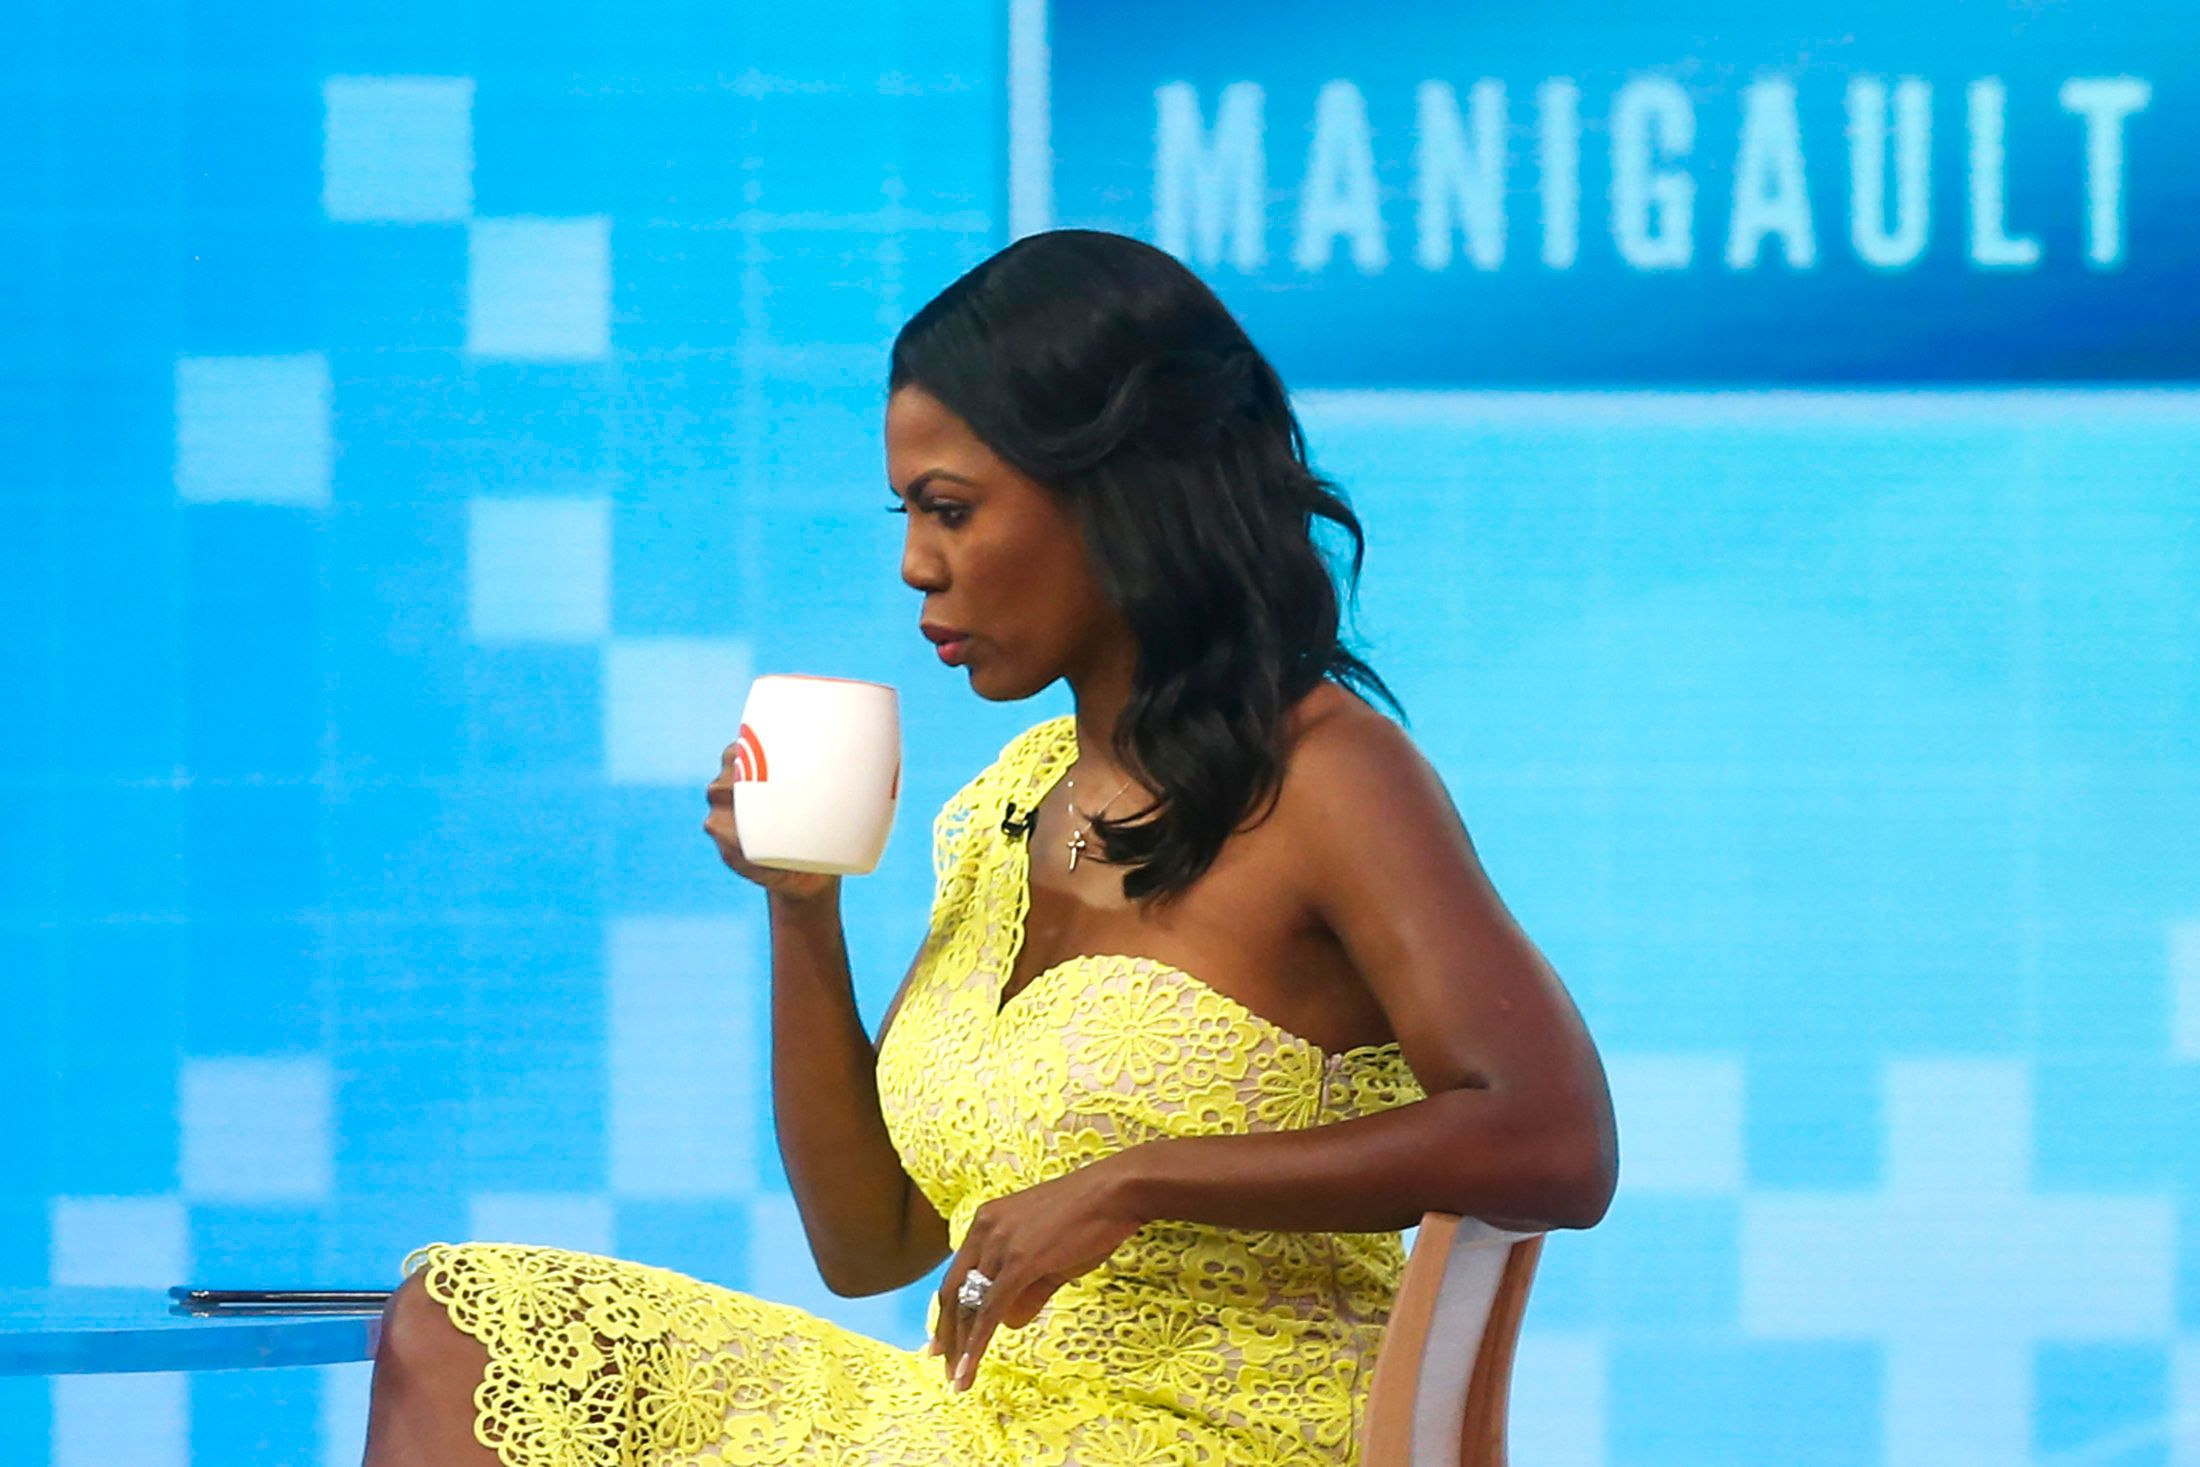 NEW YORK, NY - AUGUST 13: Omarosa Manigualt-Newman waits to promote her new book on The 'Today Show' on August 13, 2018 in New York City. Omarosa Manigault Newman Former White House aide, recognizes that she taped her firing process of White House just to protect herself. (Photo by Eduardo Munoz Alvarez/Getty Images)